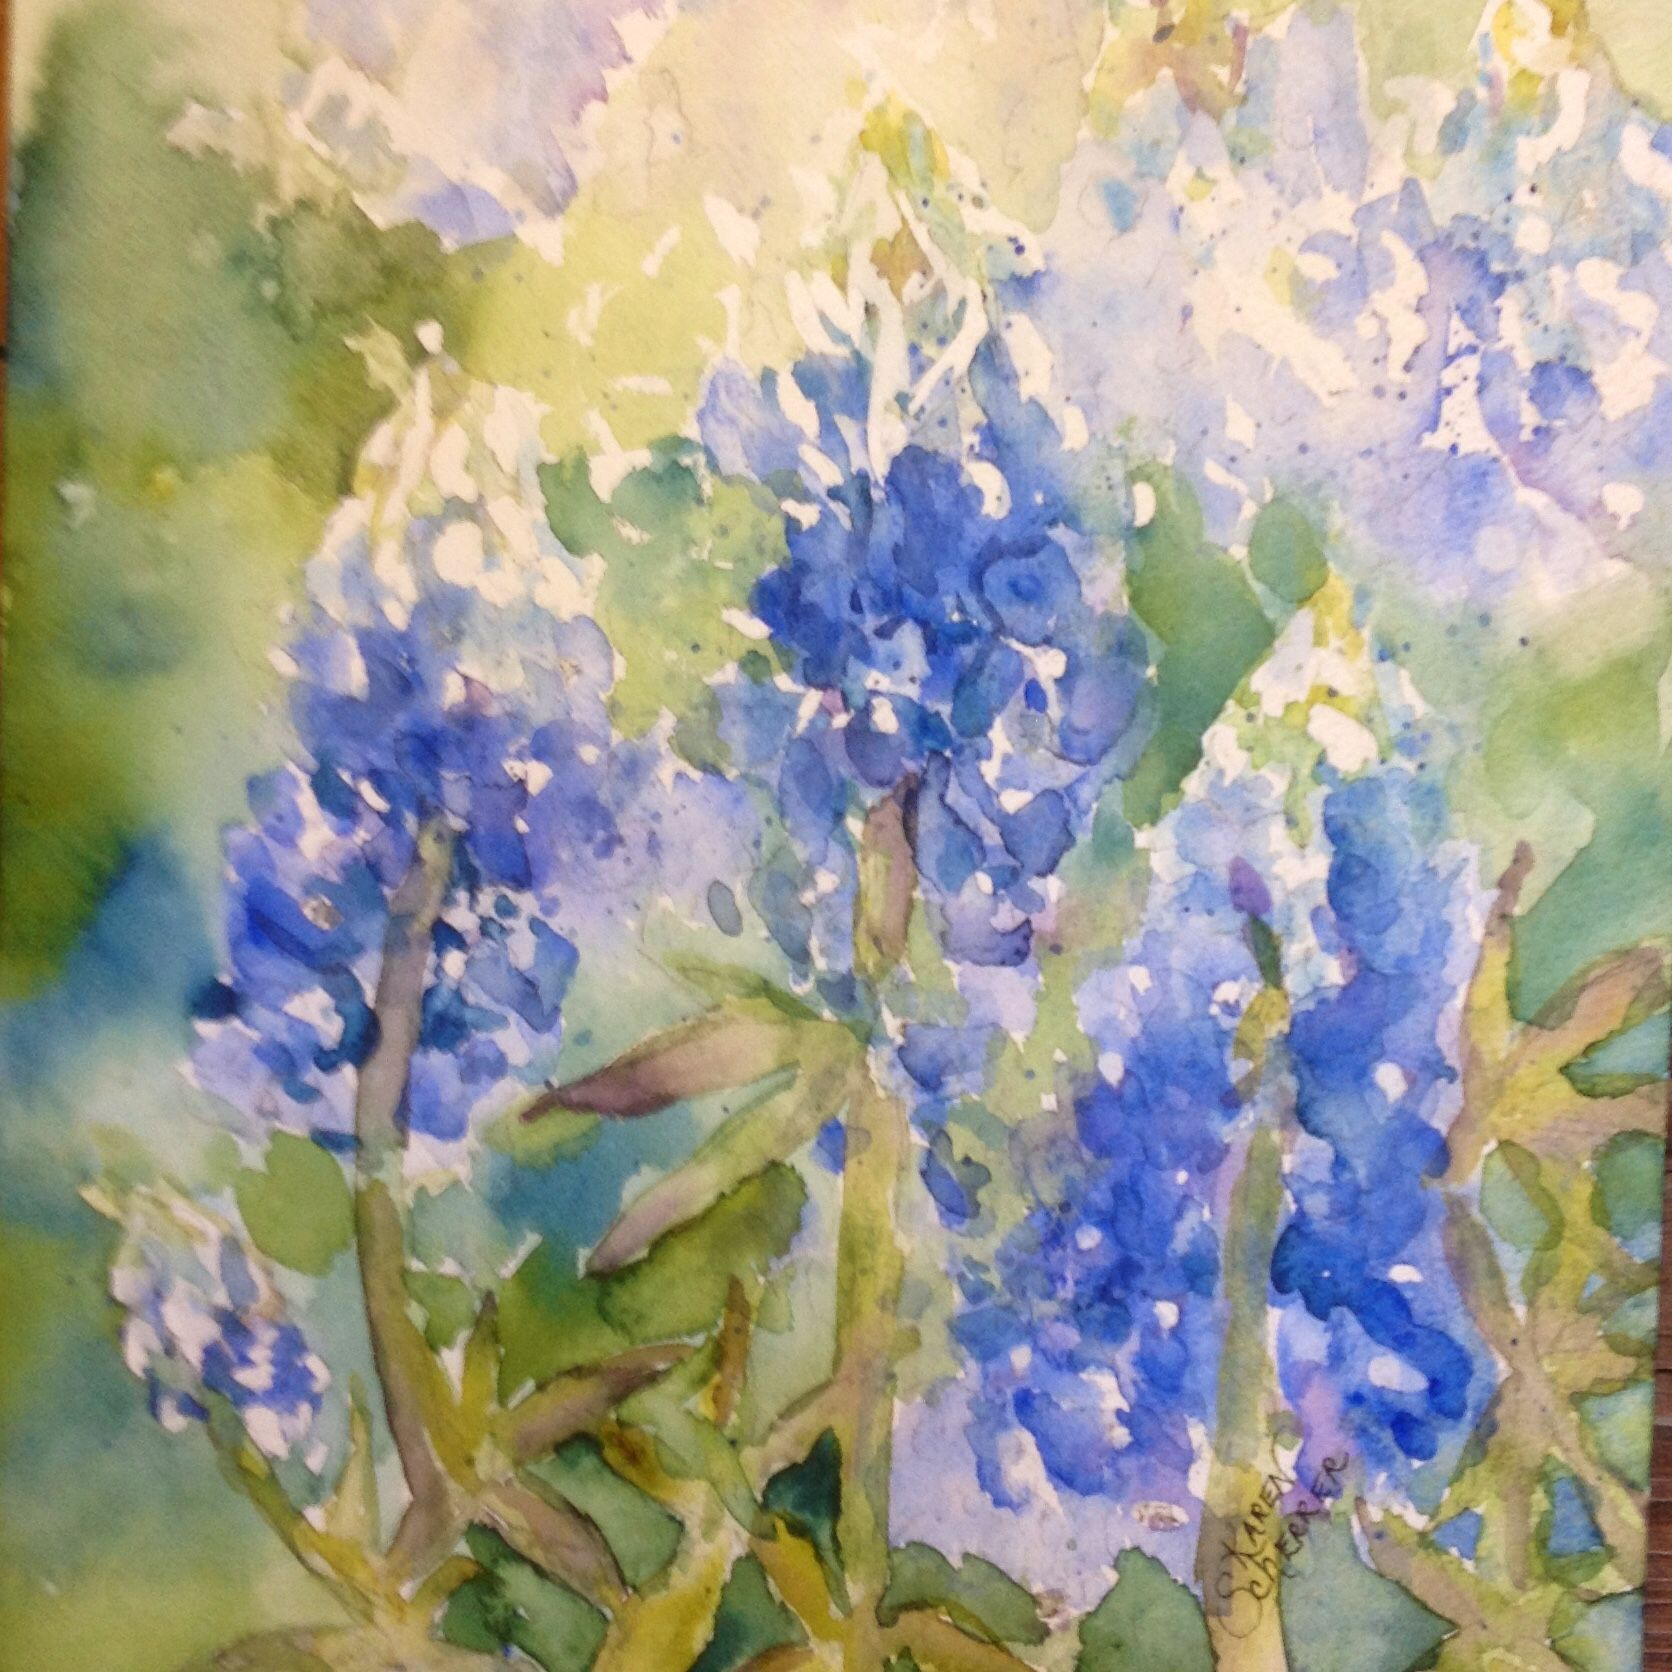 Watercolor artists in texas - Bounty Of Bluebonnets By Texas Watercolor Artist Karen Scherrer